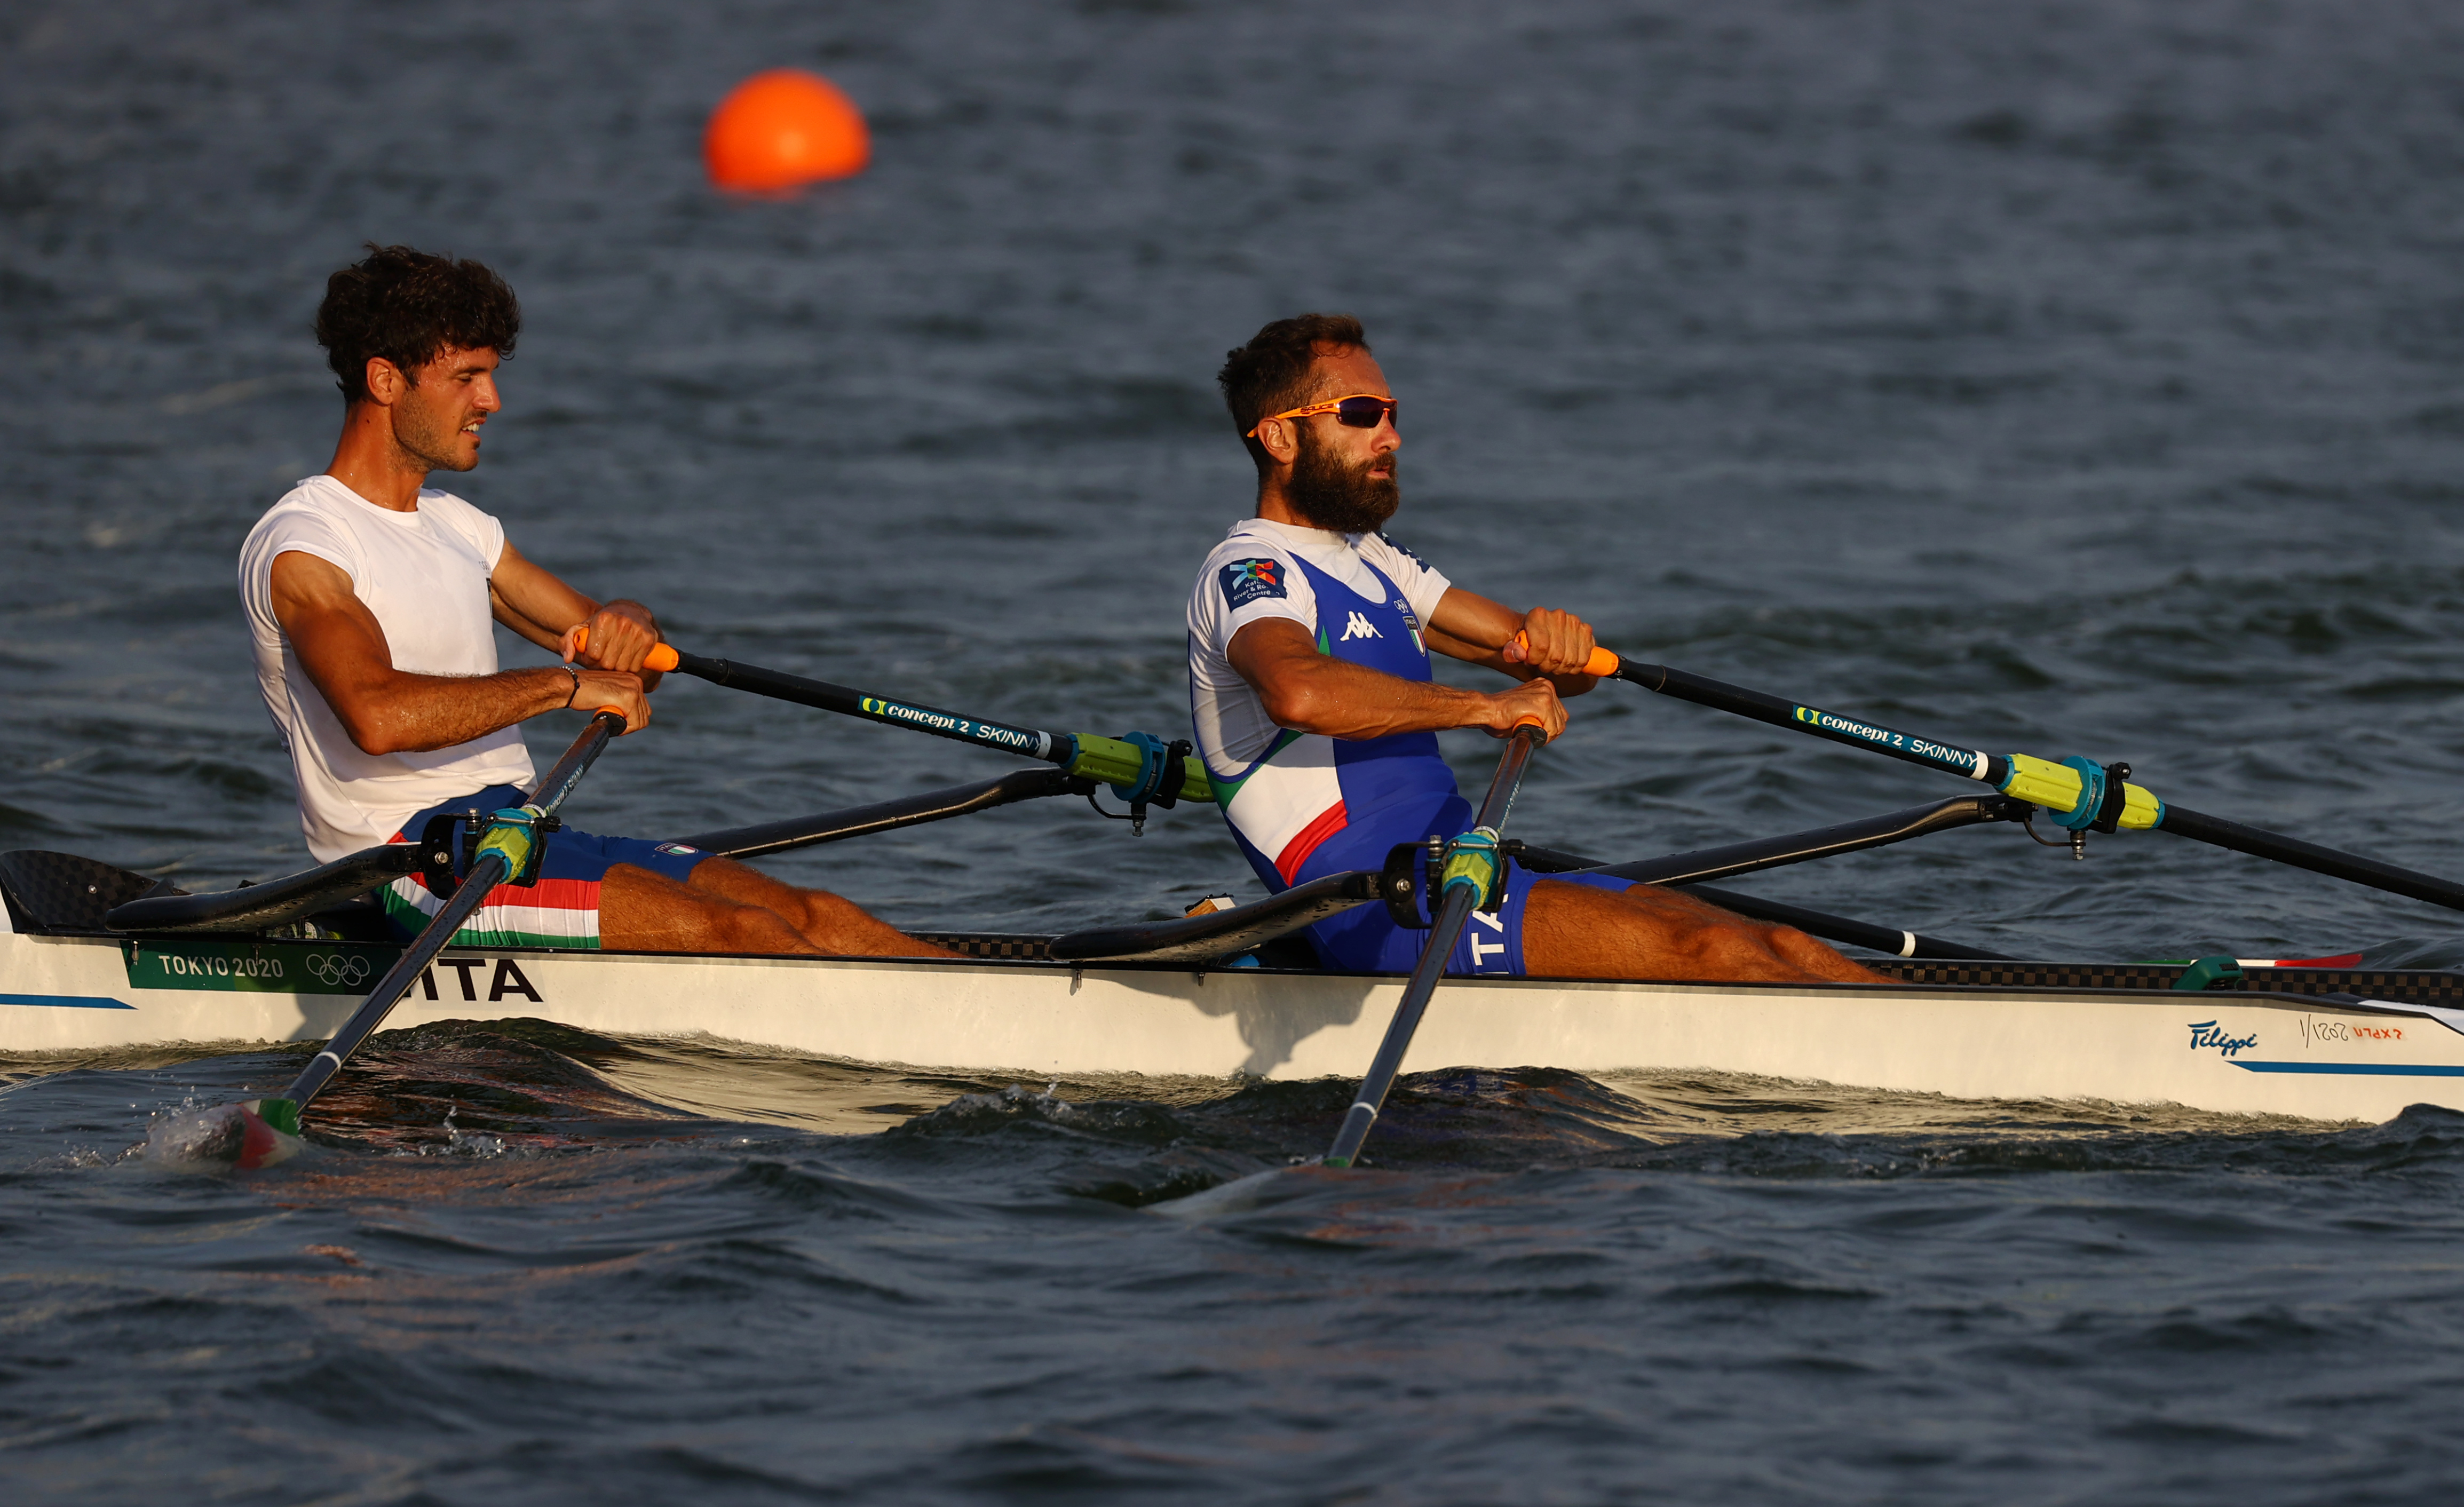 Tokyo 2020 Olympics - Rowing Training - Sea Forest Waterway, Tokyo, Japan - July 22, 2021 Pietro Ruta of Italy and Stefano Oppo of Italy during training REUTERS/Leah Millis